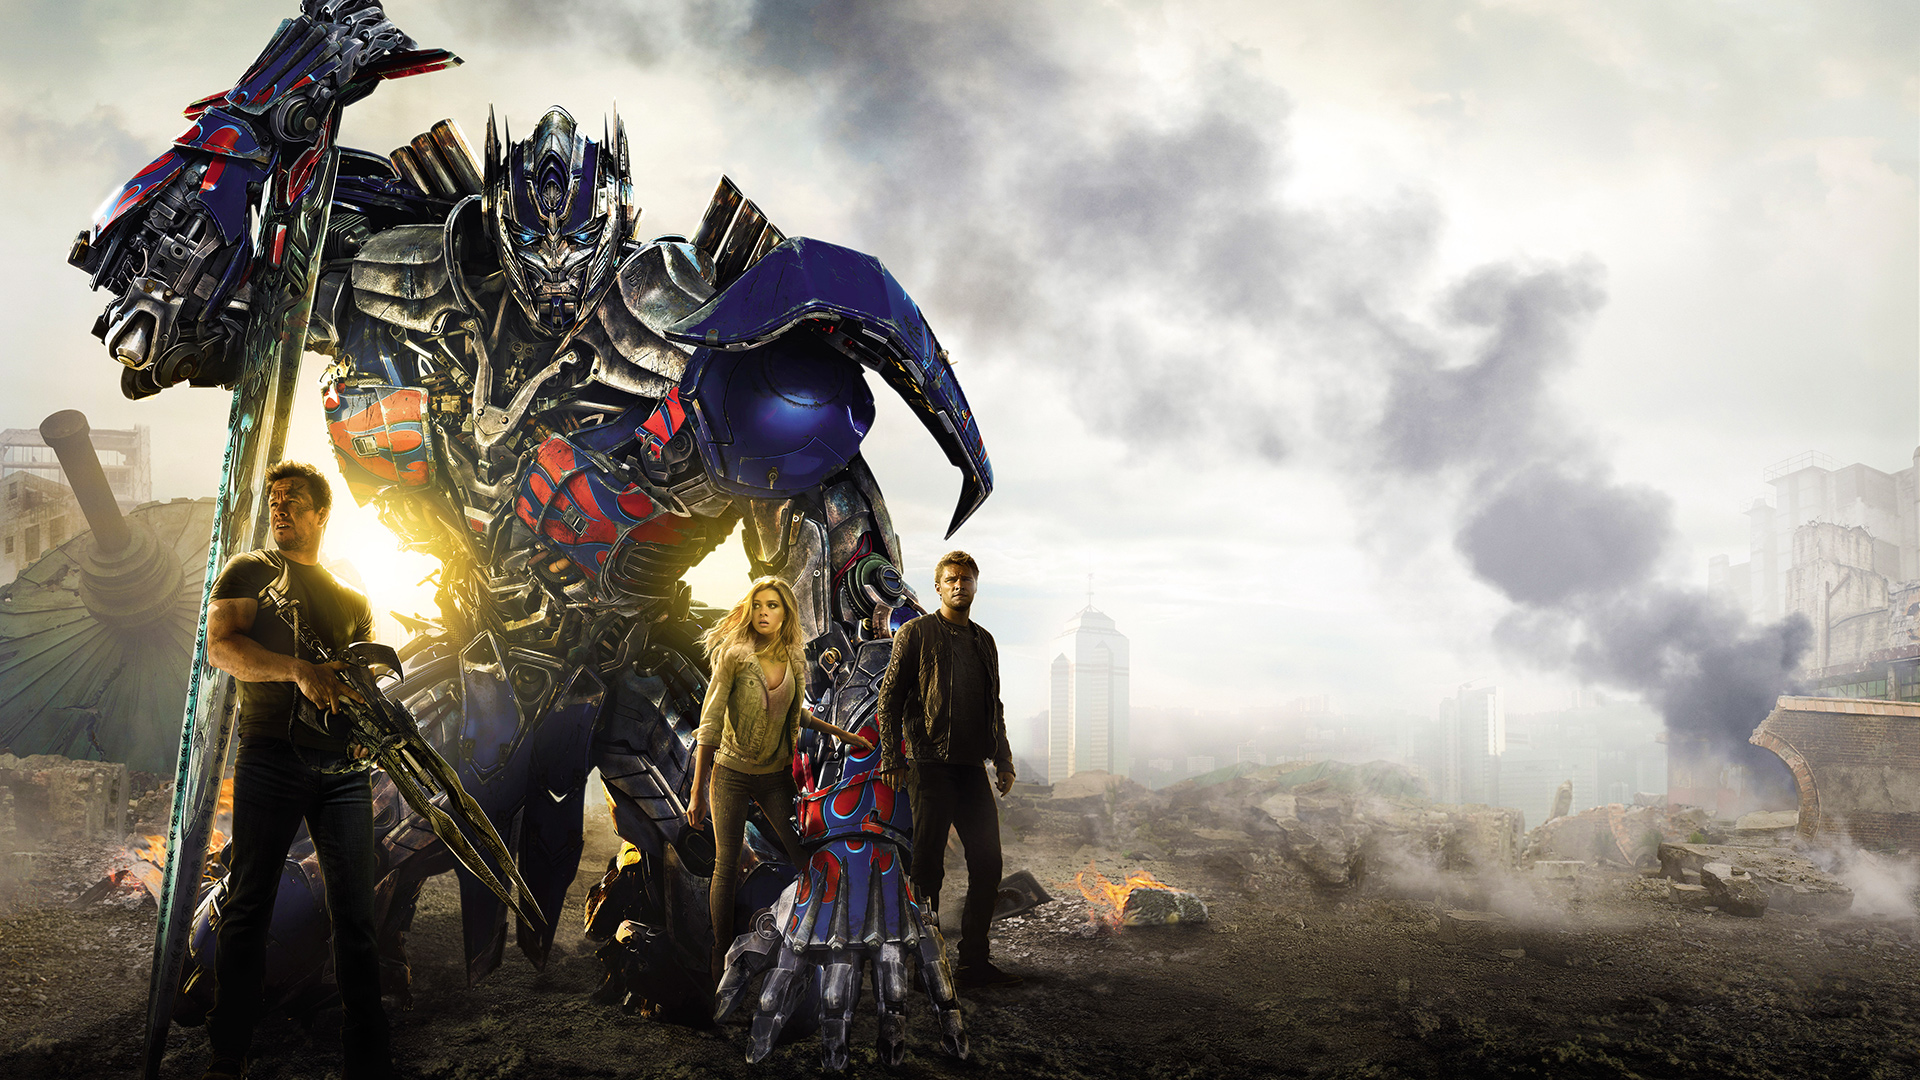 Transformers age of extinction wallpapers pictures images - Wallpapers transformers 4 ...